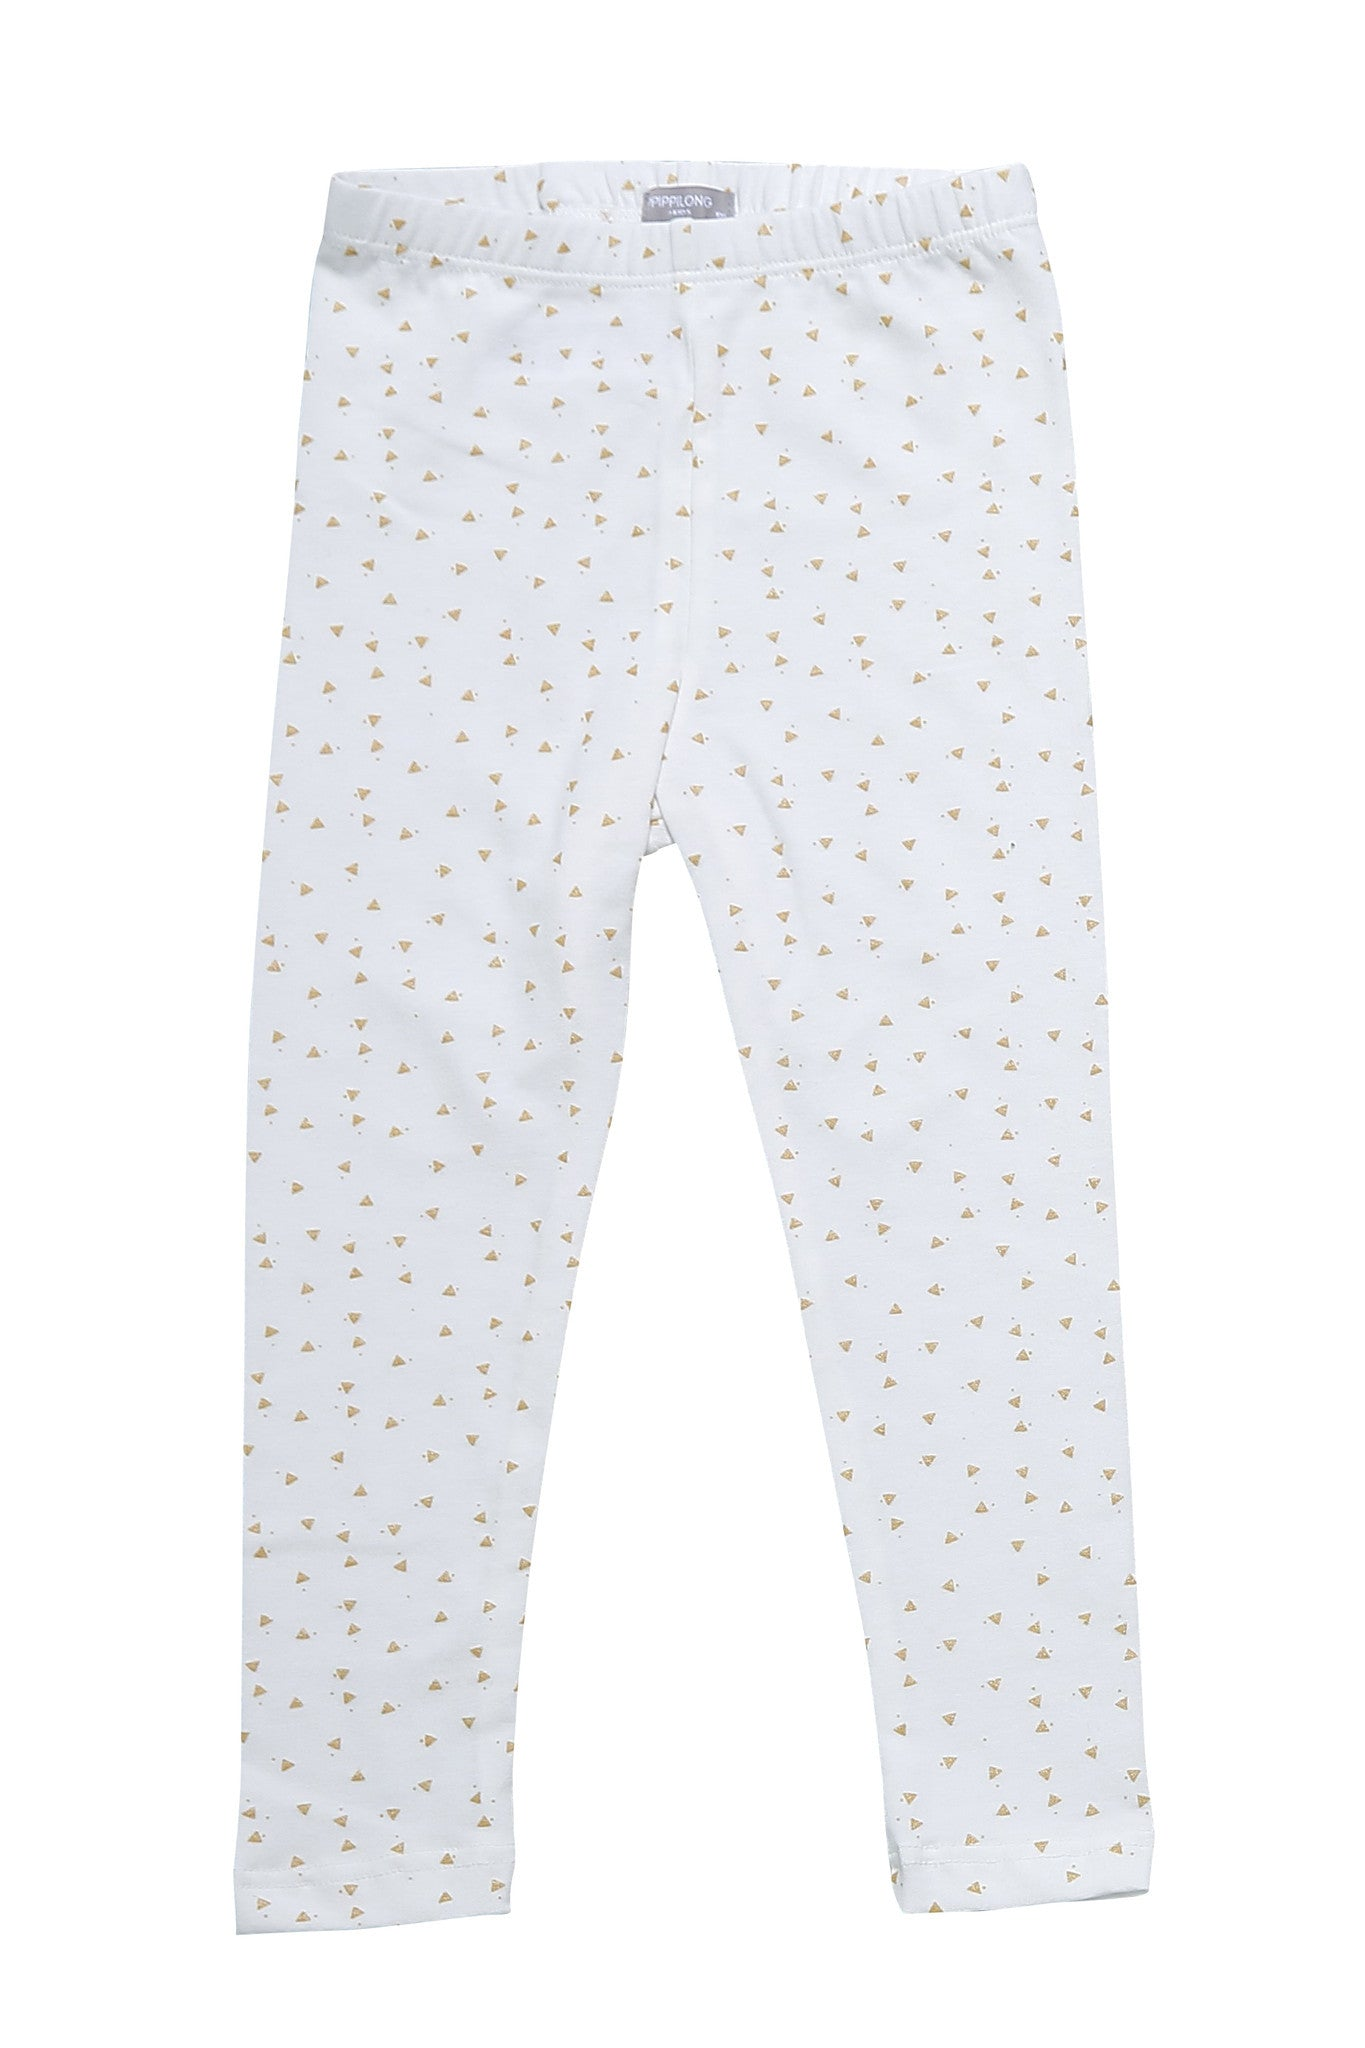 Leggings - Girls Essentials White Twinkle Leggings